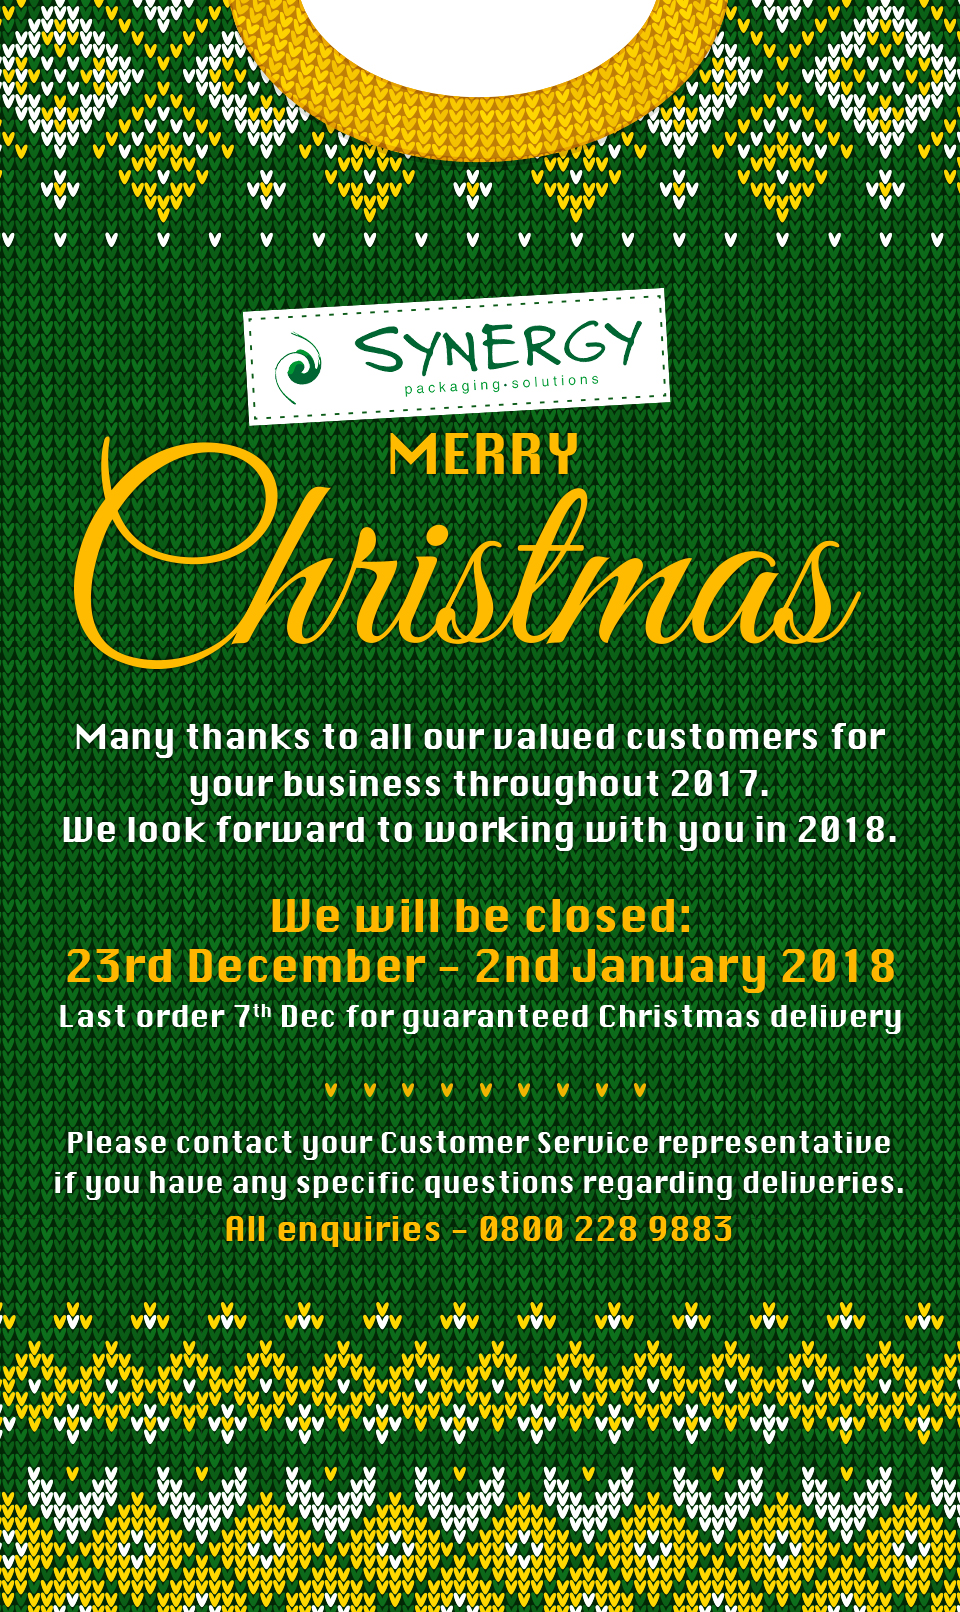 Merry Christmas from Synergy